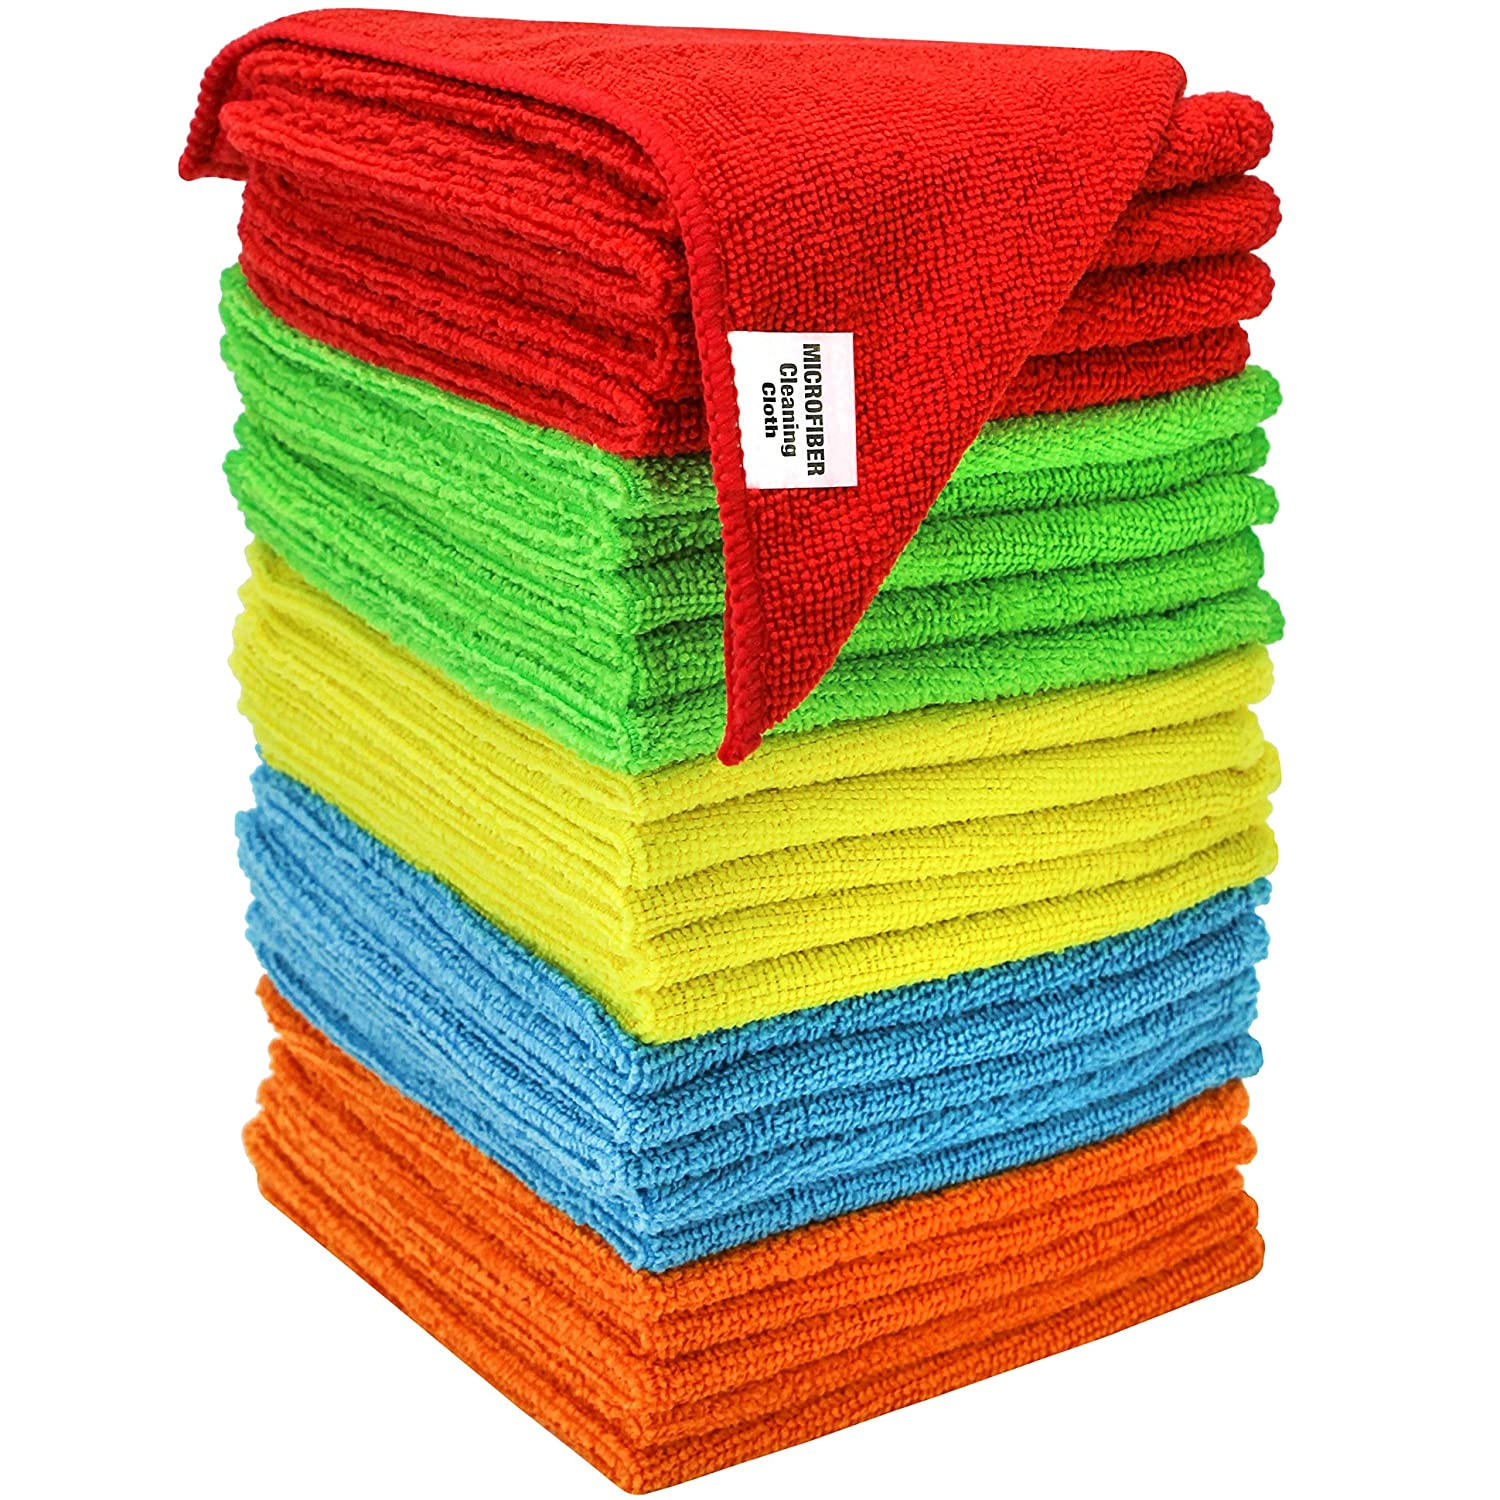 S & T 594501 25 Pack Microfiber Bulk Cleaning Cloth 25 Pack